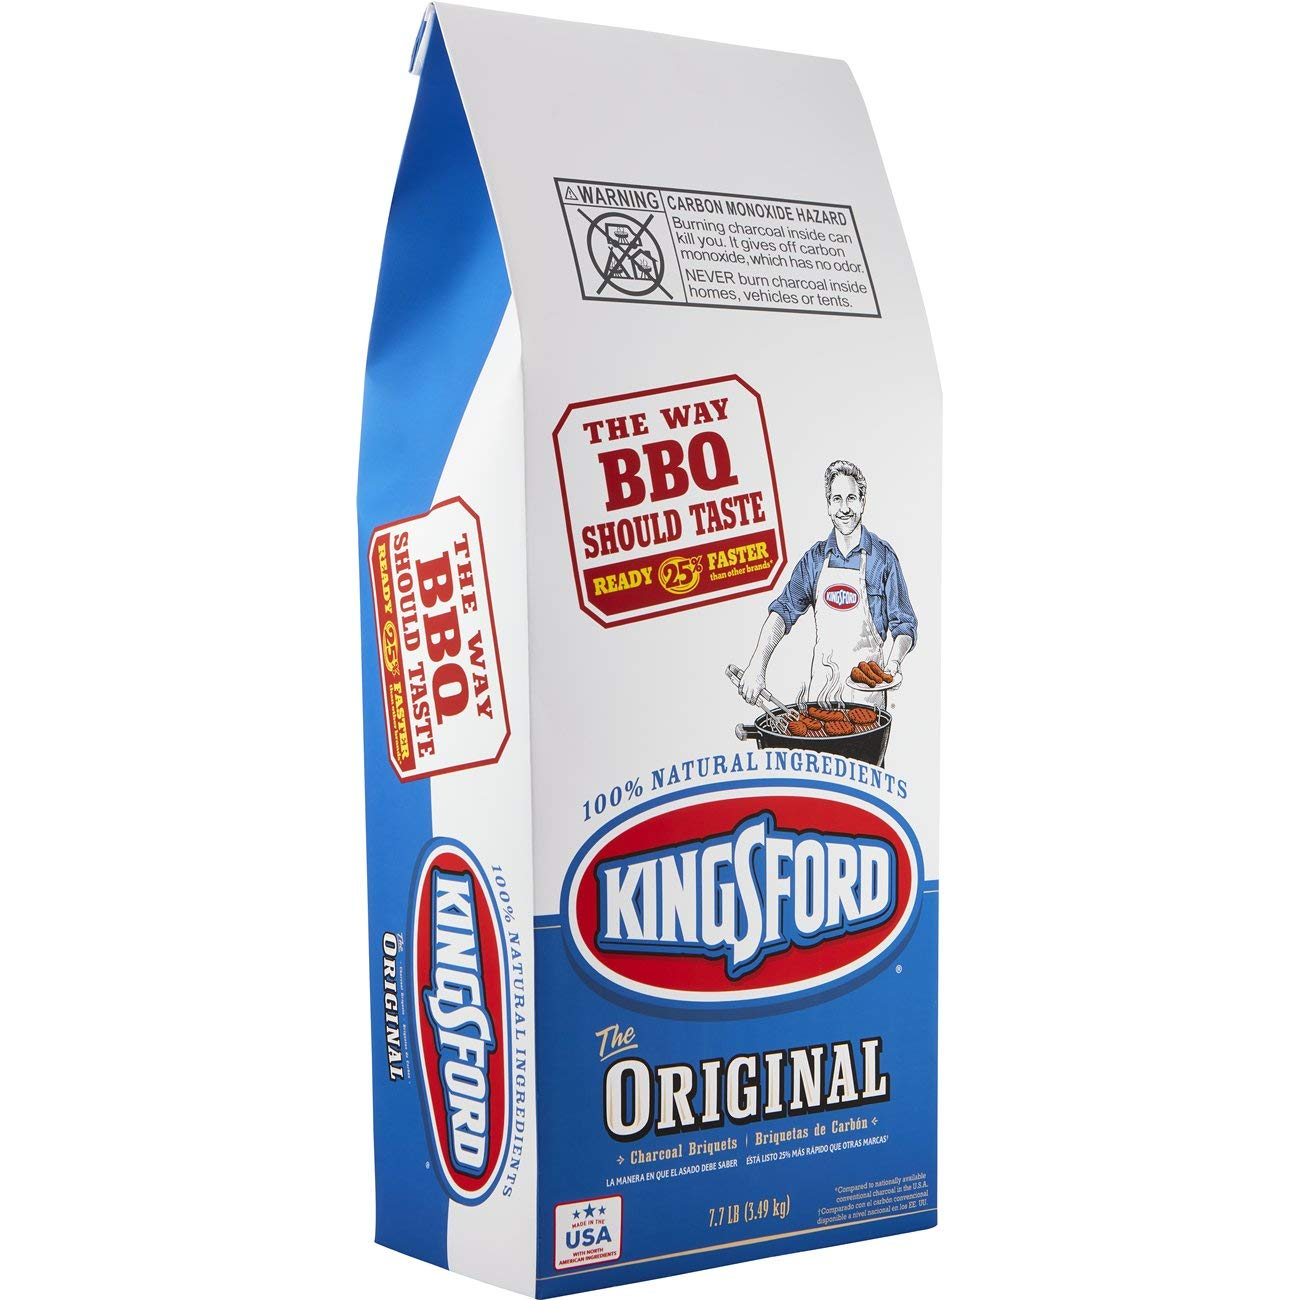 Kingsford Original Charcoal Briquettes, 7.7 Pound Bag (Pack of 2) (Packaging May Vary) by Kingsford